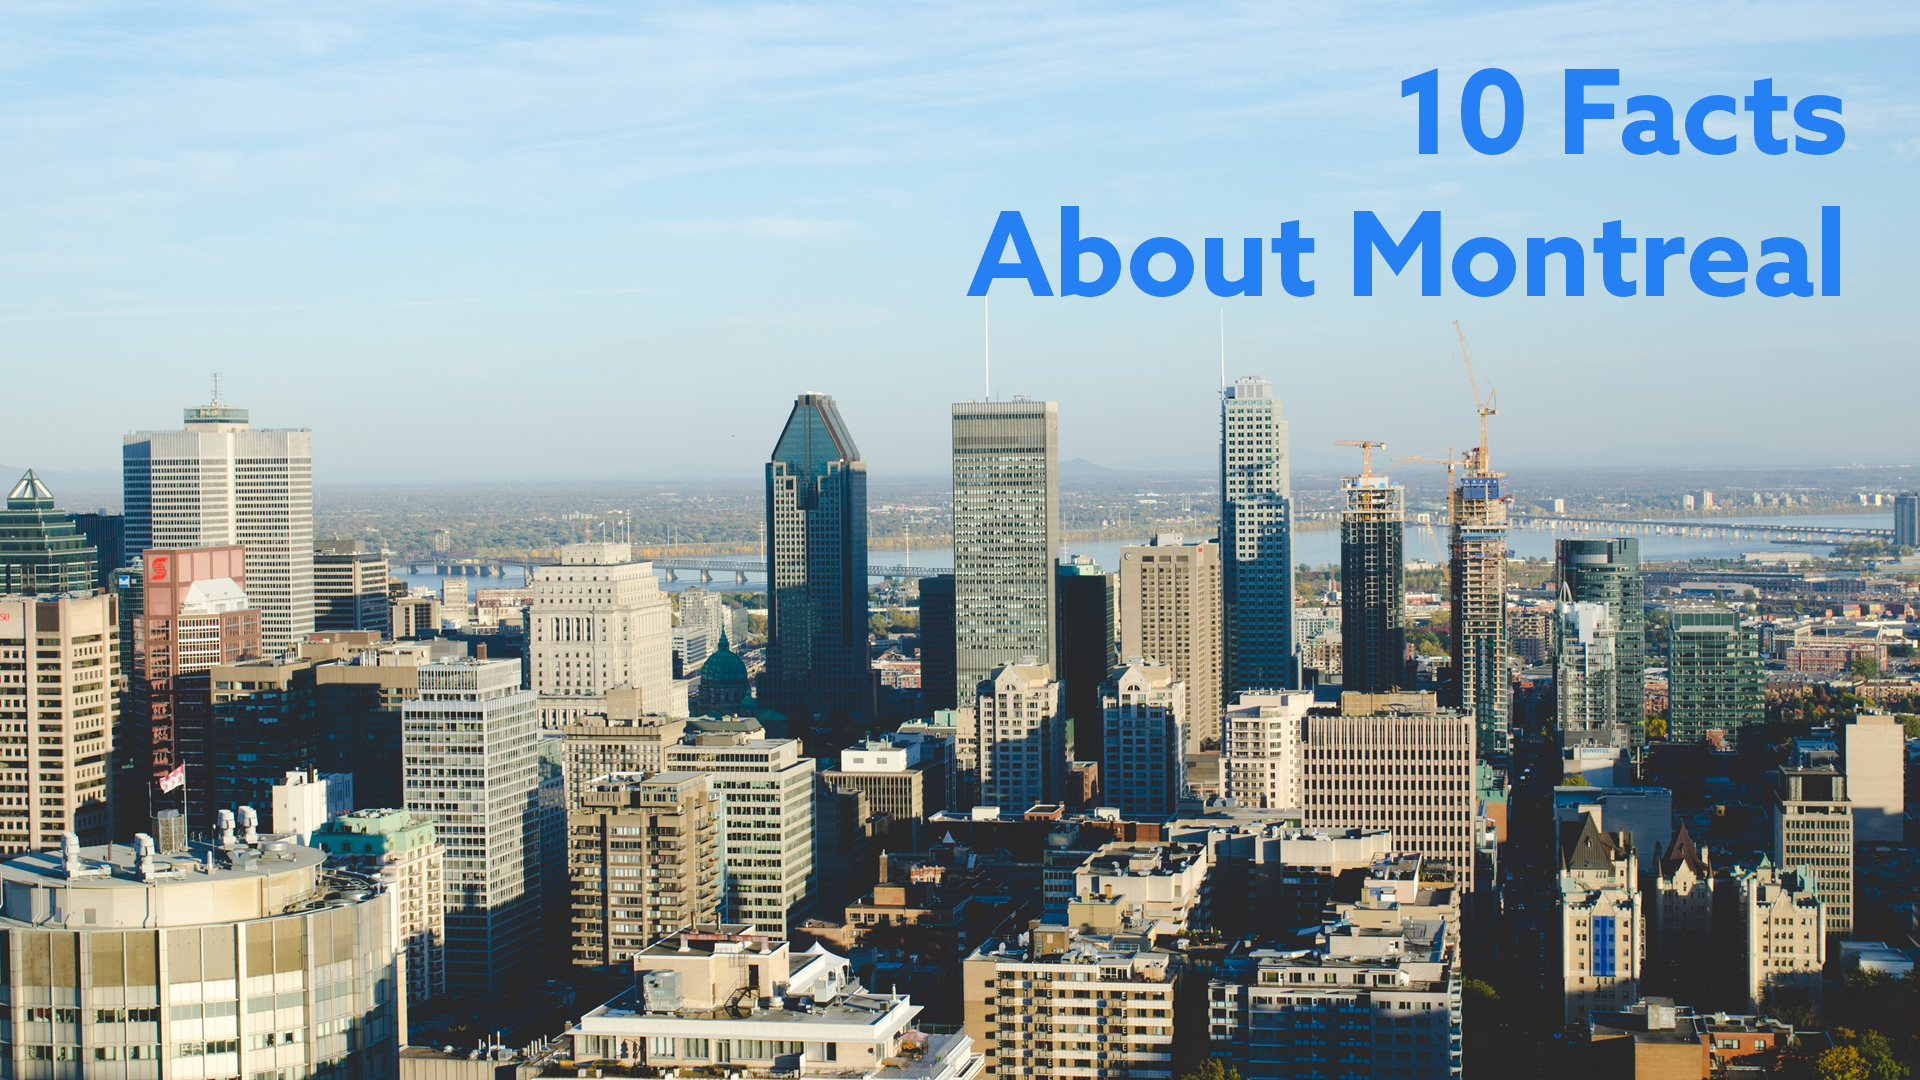 10 Facts About Montreal